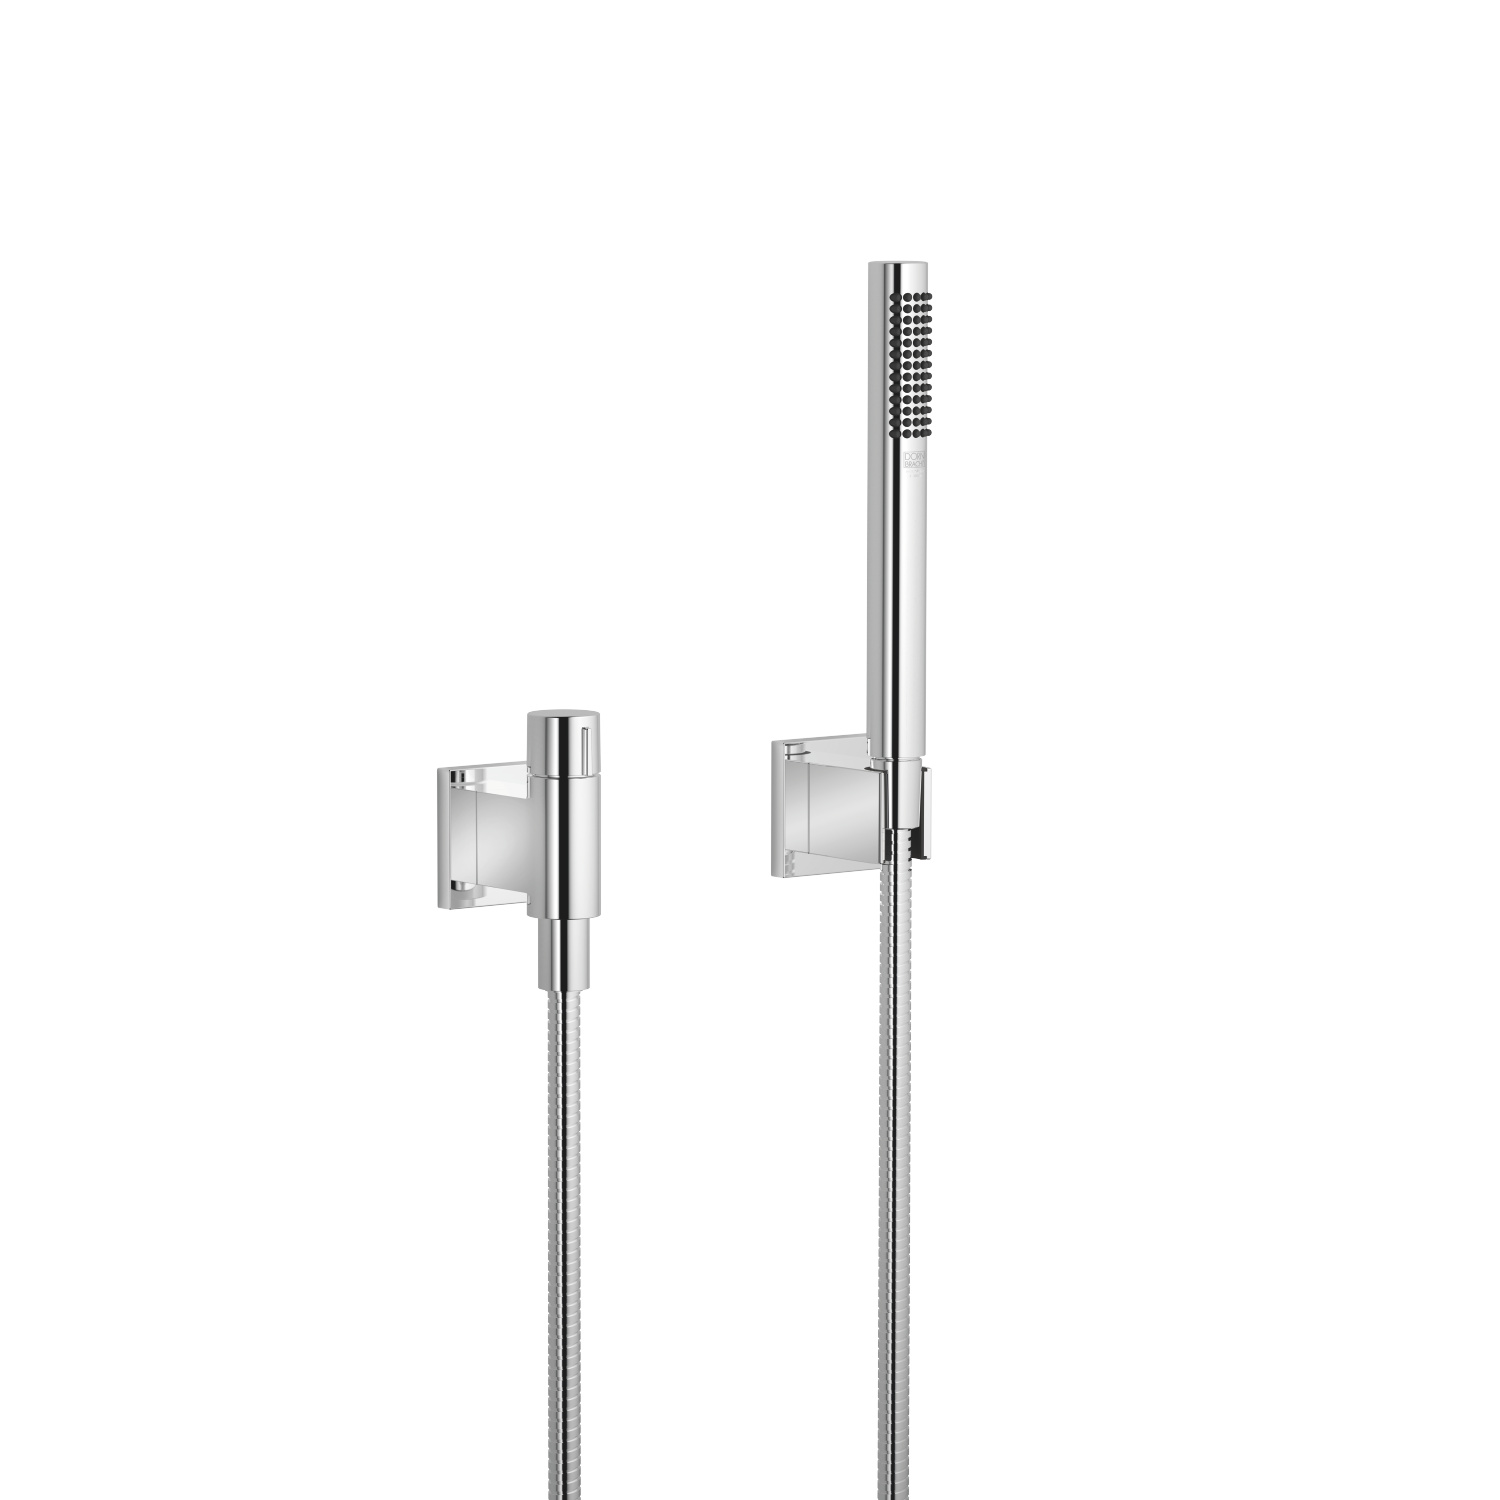 Hand shower set with individual rosettes with volume control - polished chrome